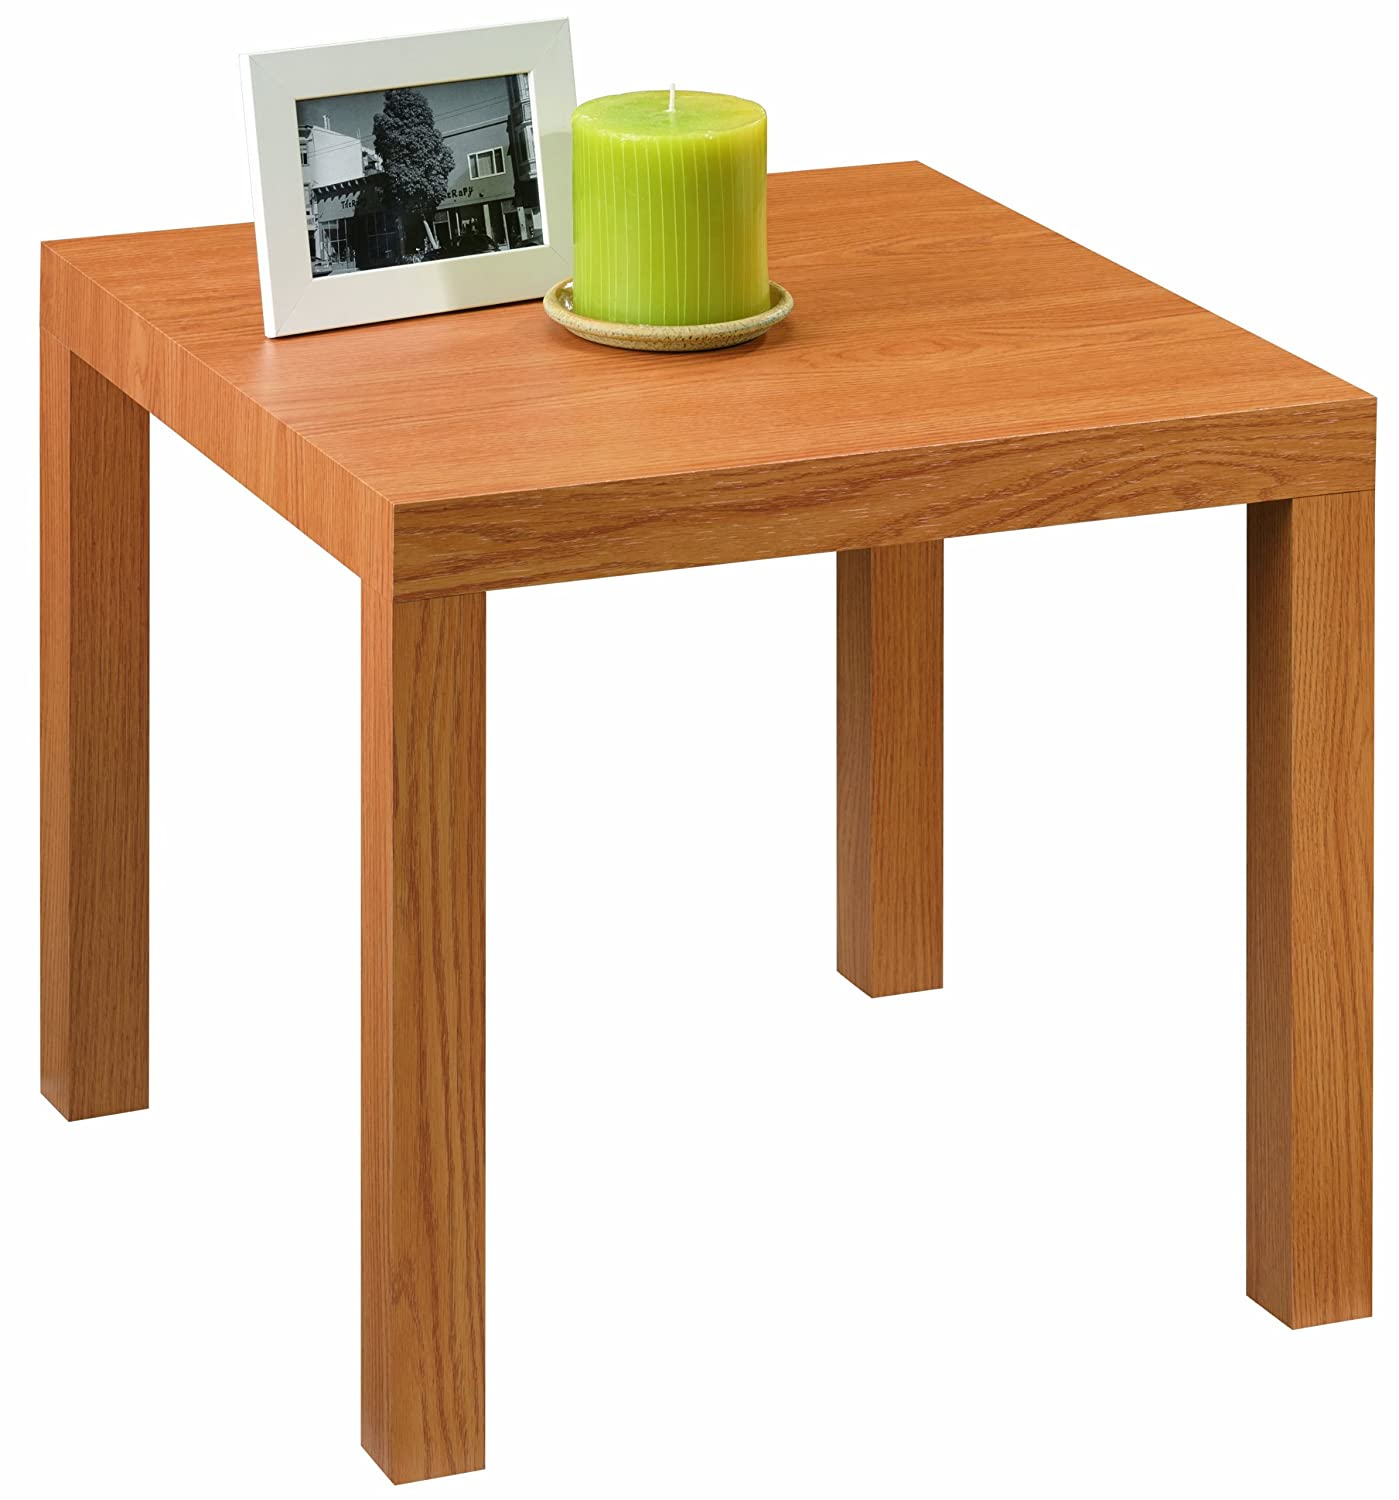 Modern natural wood grain end table living room furniture